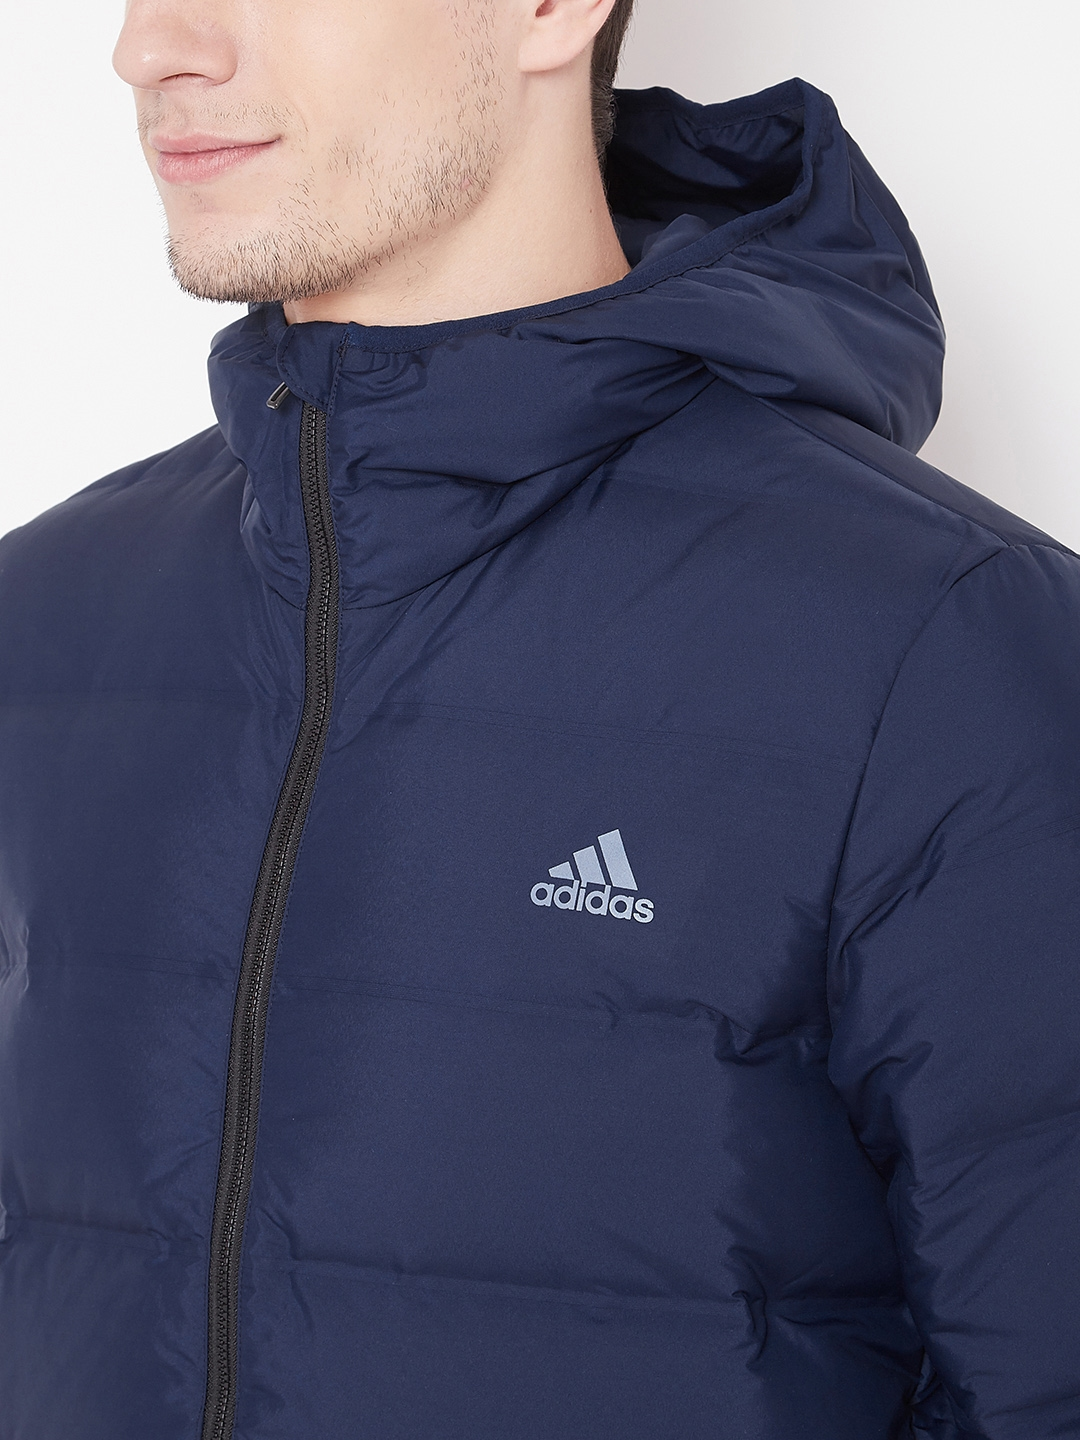 30350dc03d3f Buy ADIDAS Men Navy Blue Helionic Hooded Down Jacket - Jackets for ...